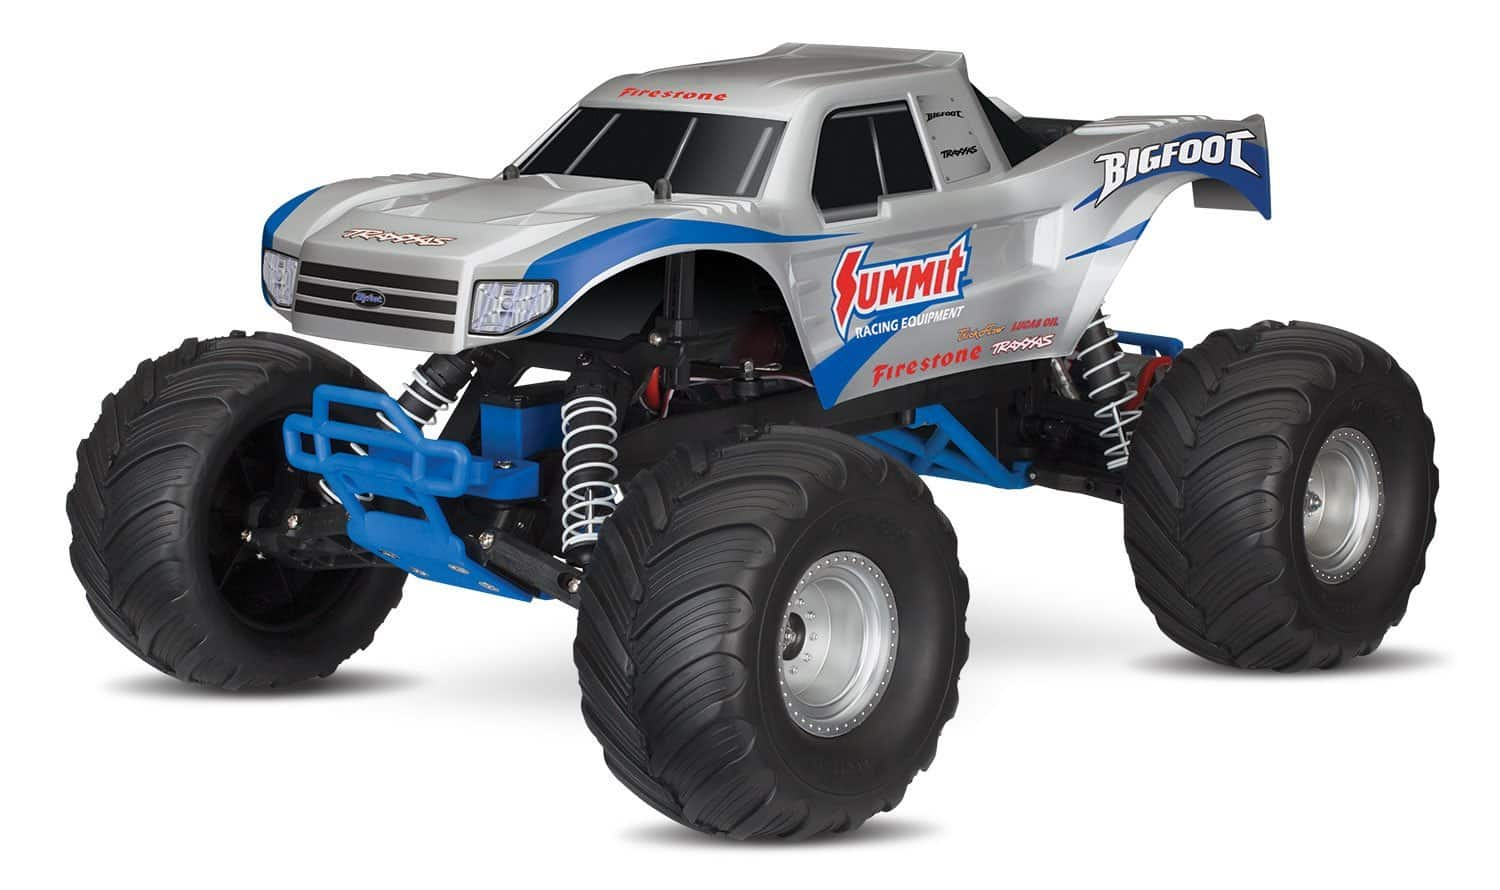 Traxxas Bigfoot 1-10 Scale Ready-To-Race Monster Truck RC Truck